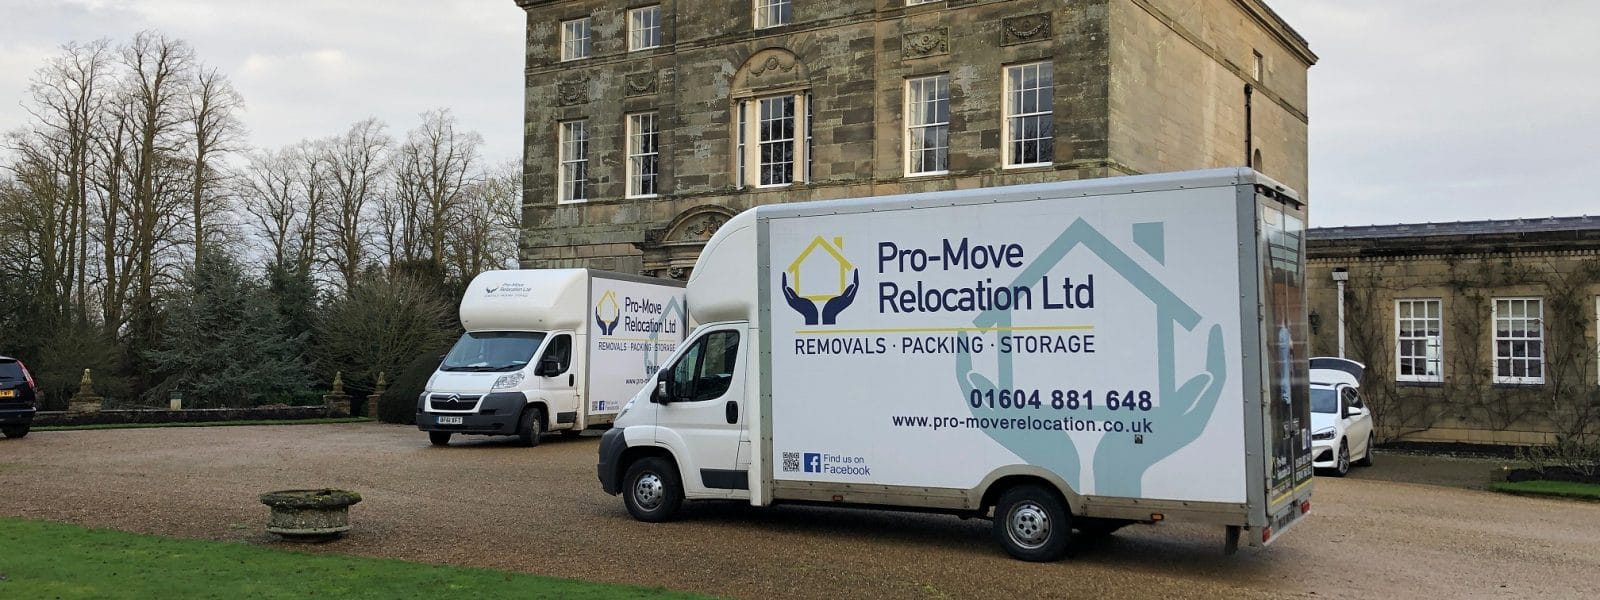 Two Pro Move relocation vans outside a stately home